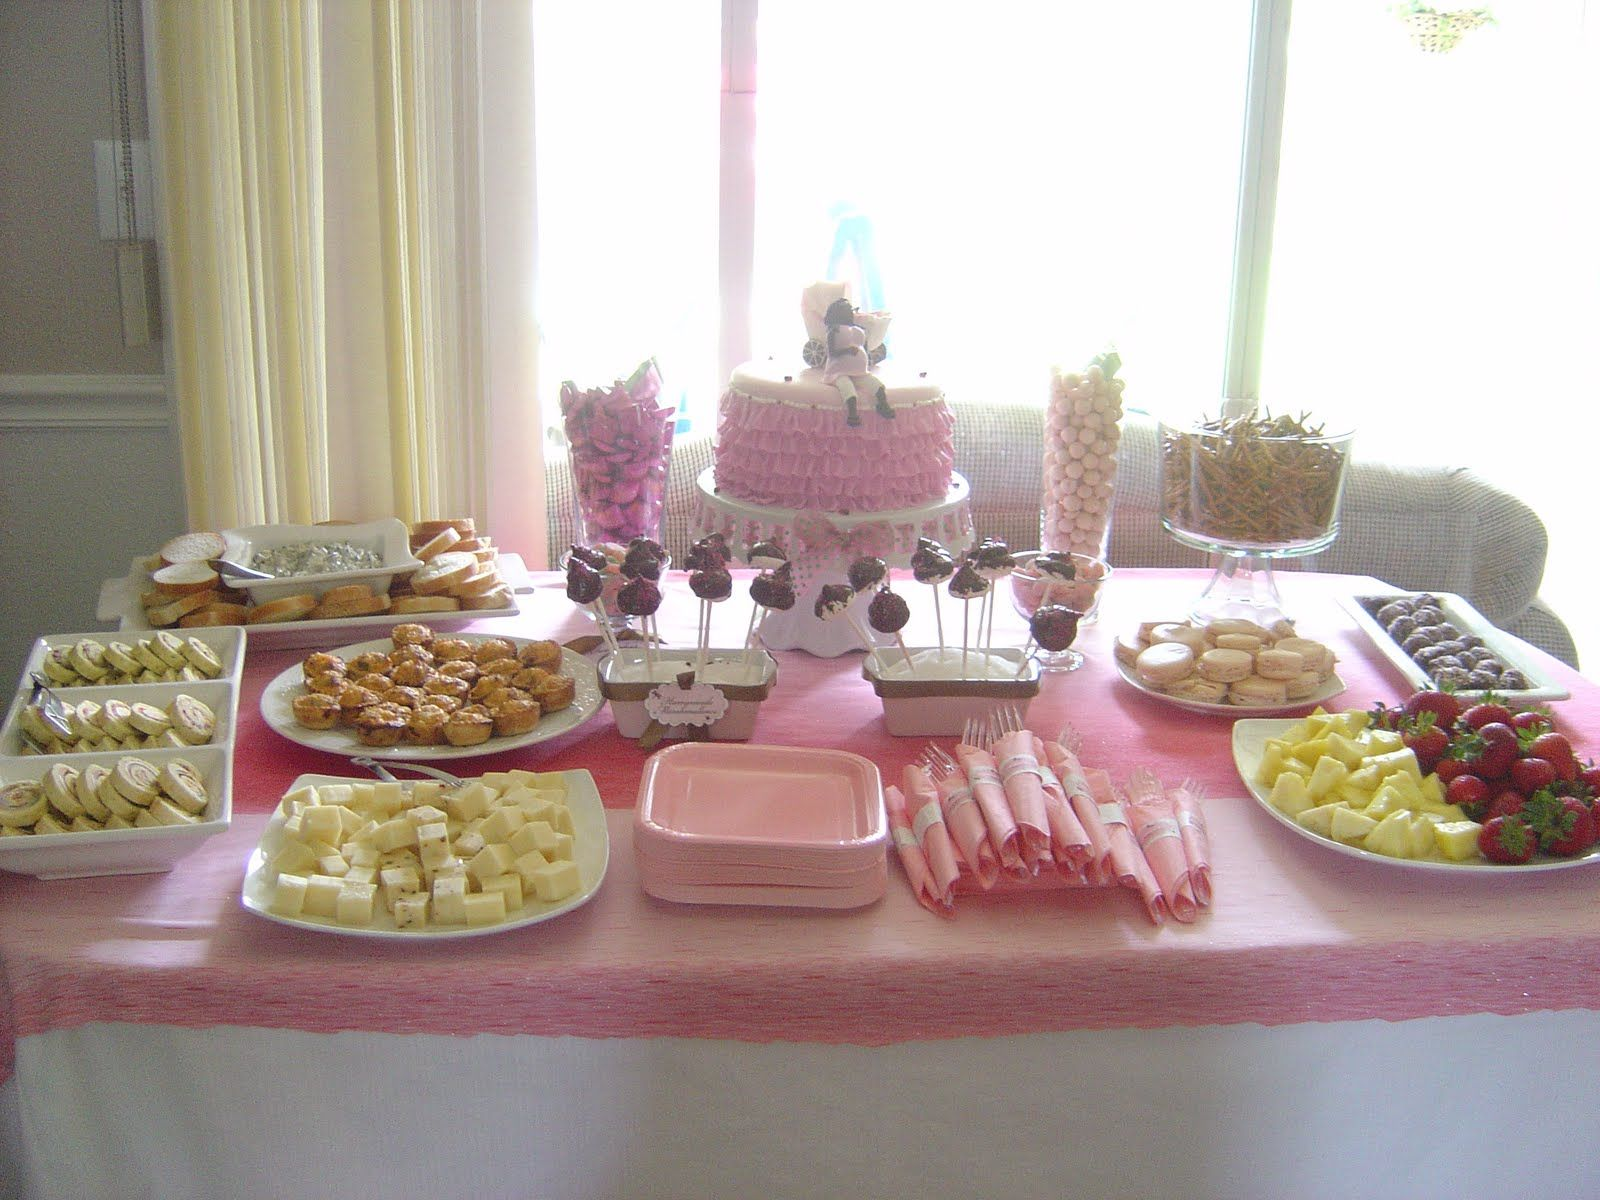 Table Setup For A Baby Shower | Saturday, June 05, 2010